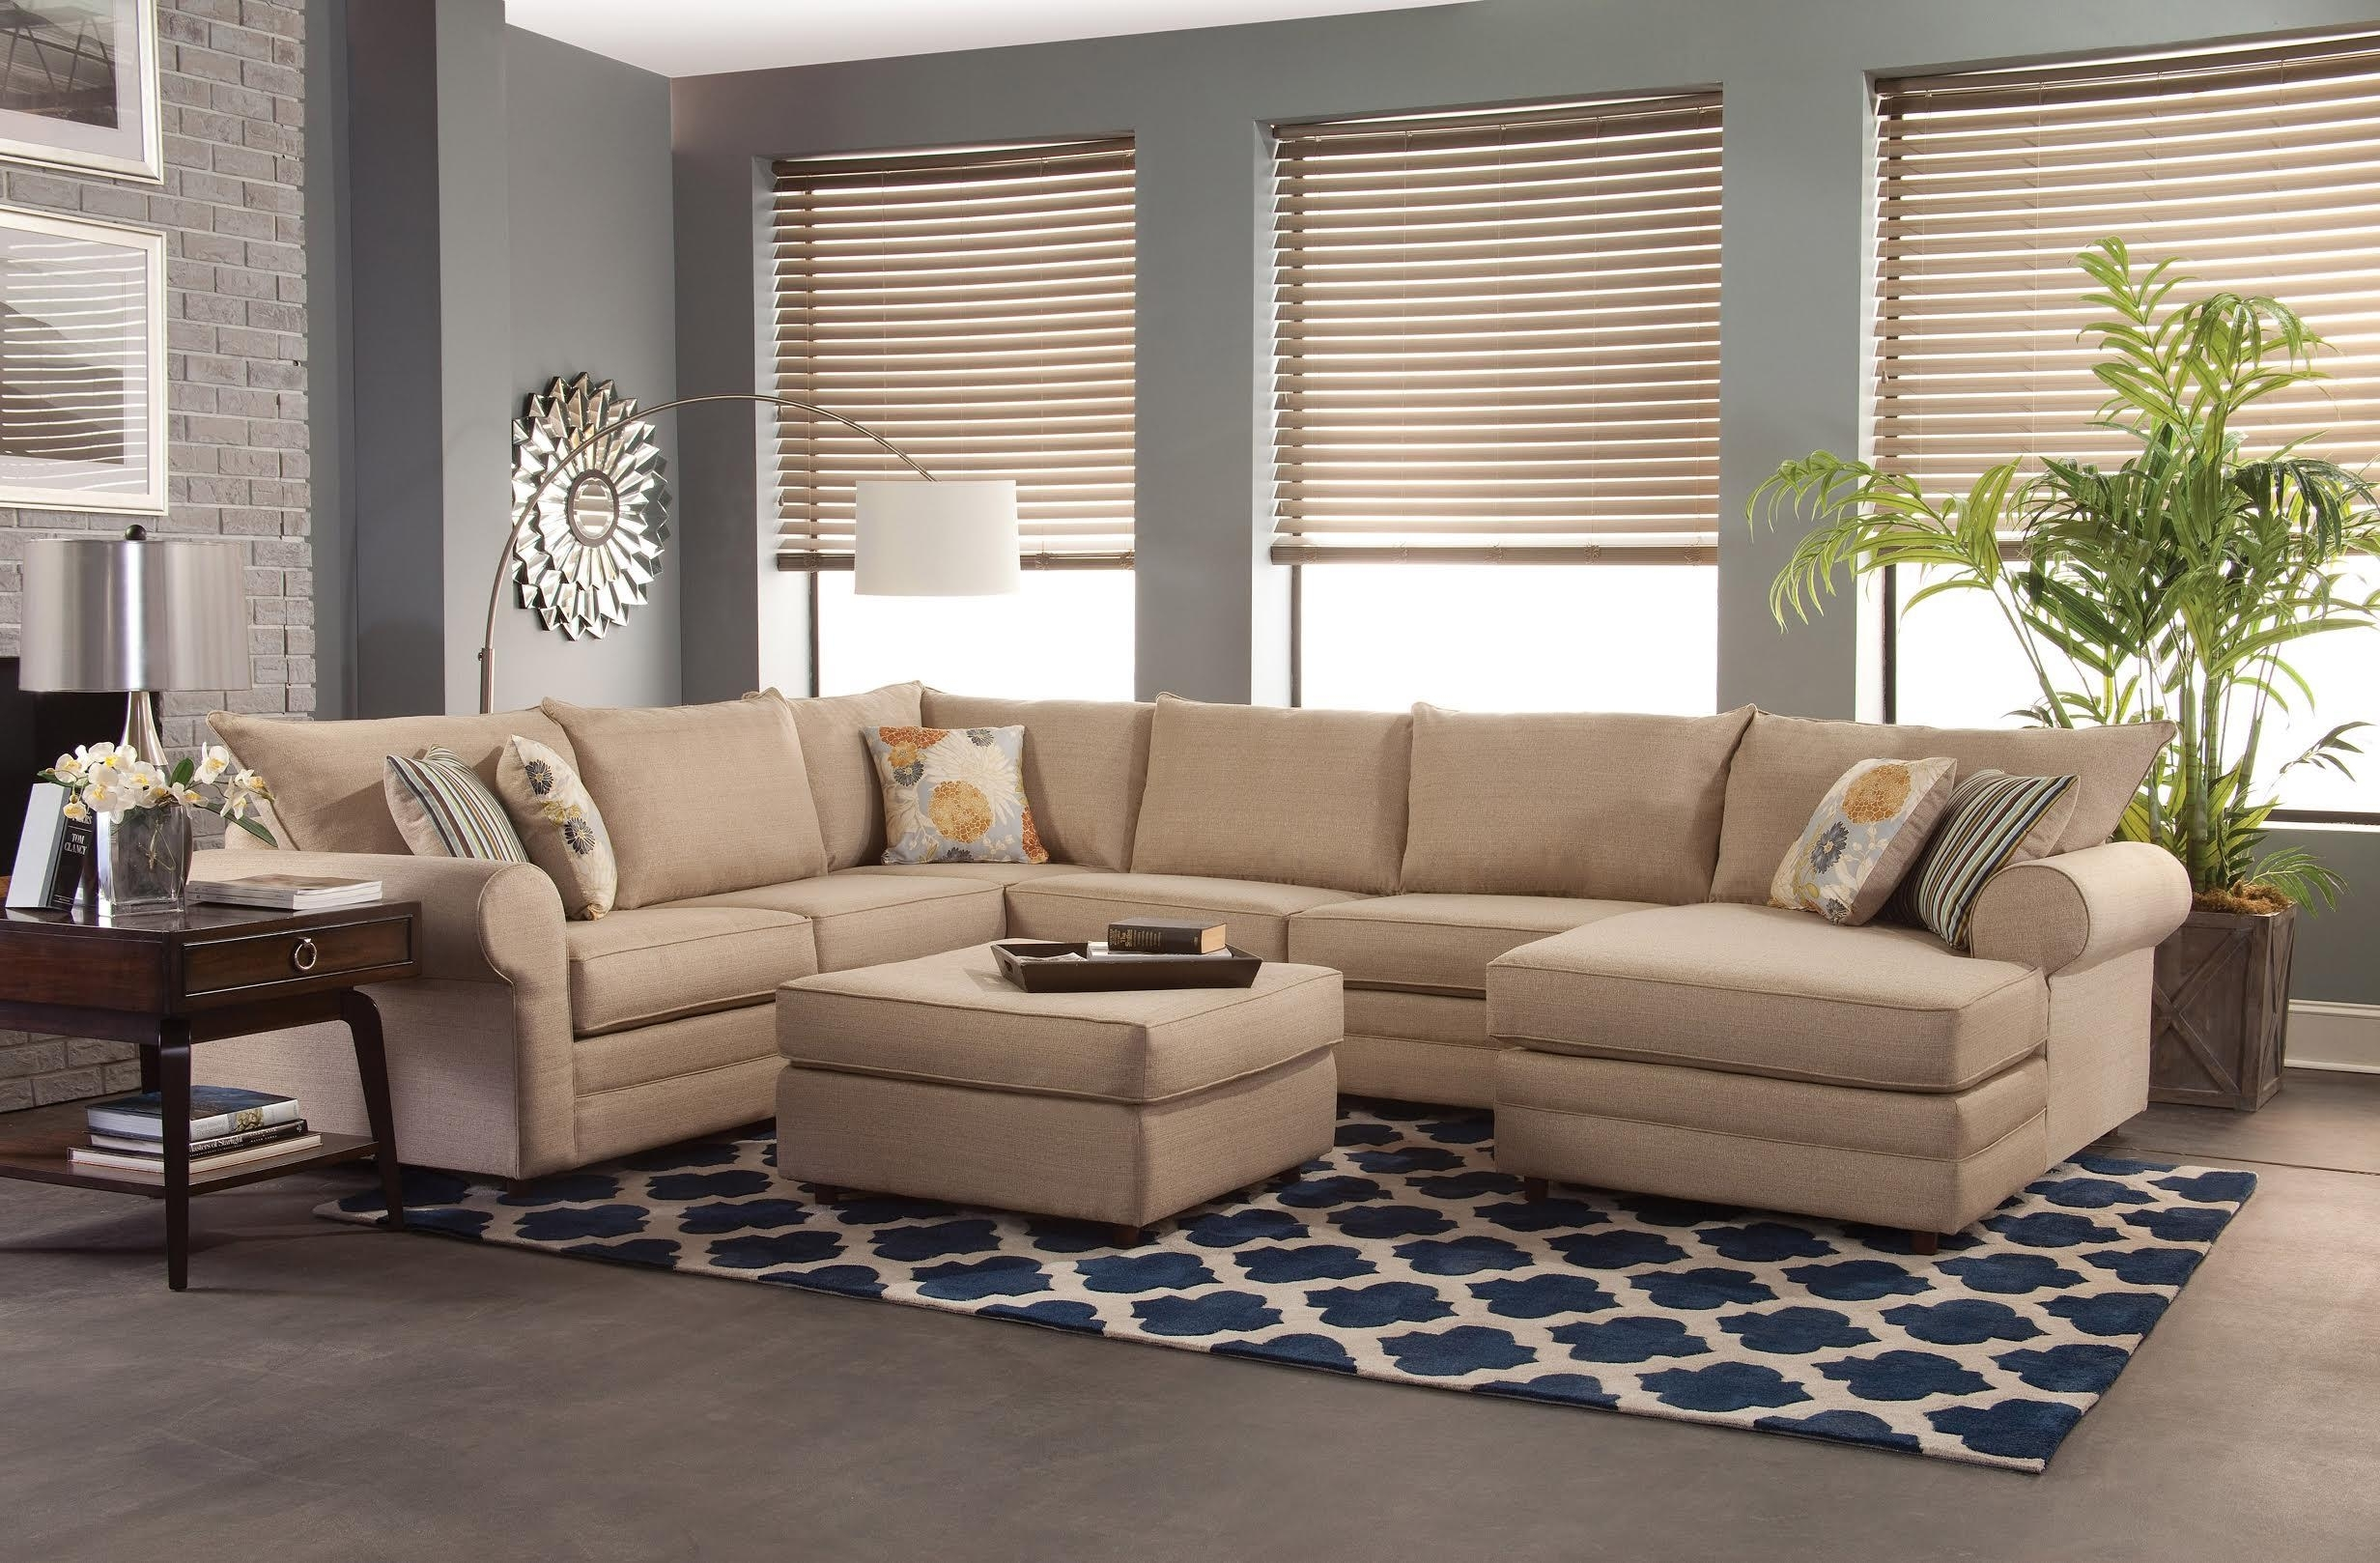 Sectional Sofas Maryland – Home And Textiles For Maryland Sofas (Image 8 of 10)